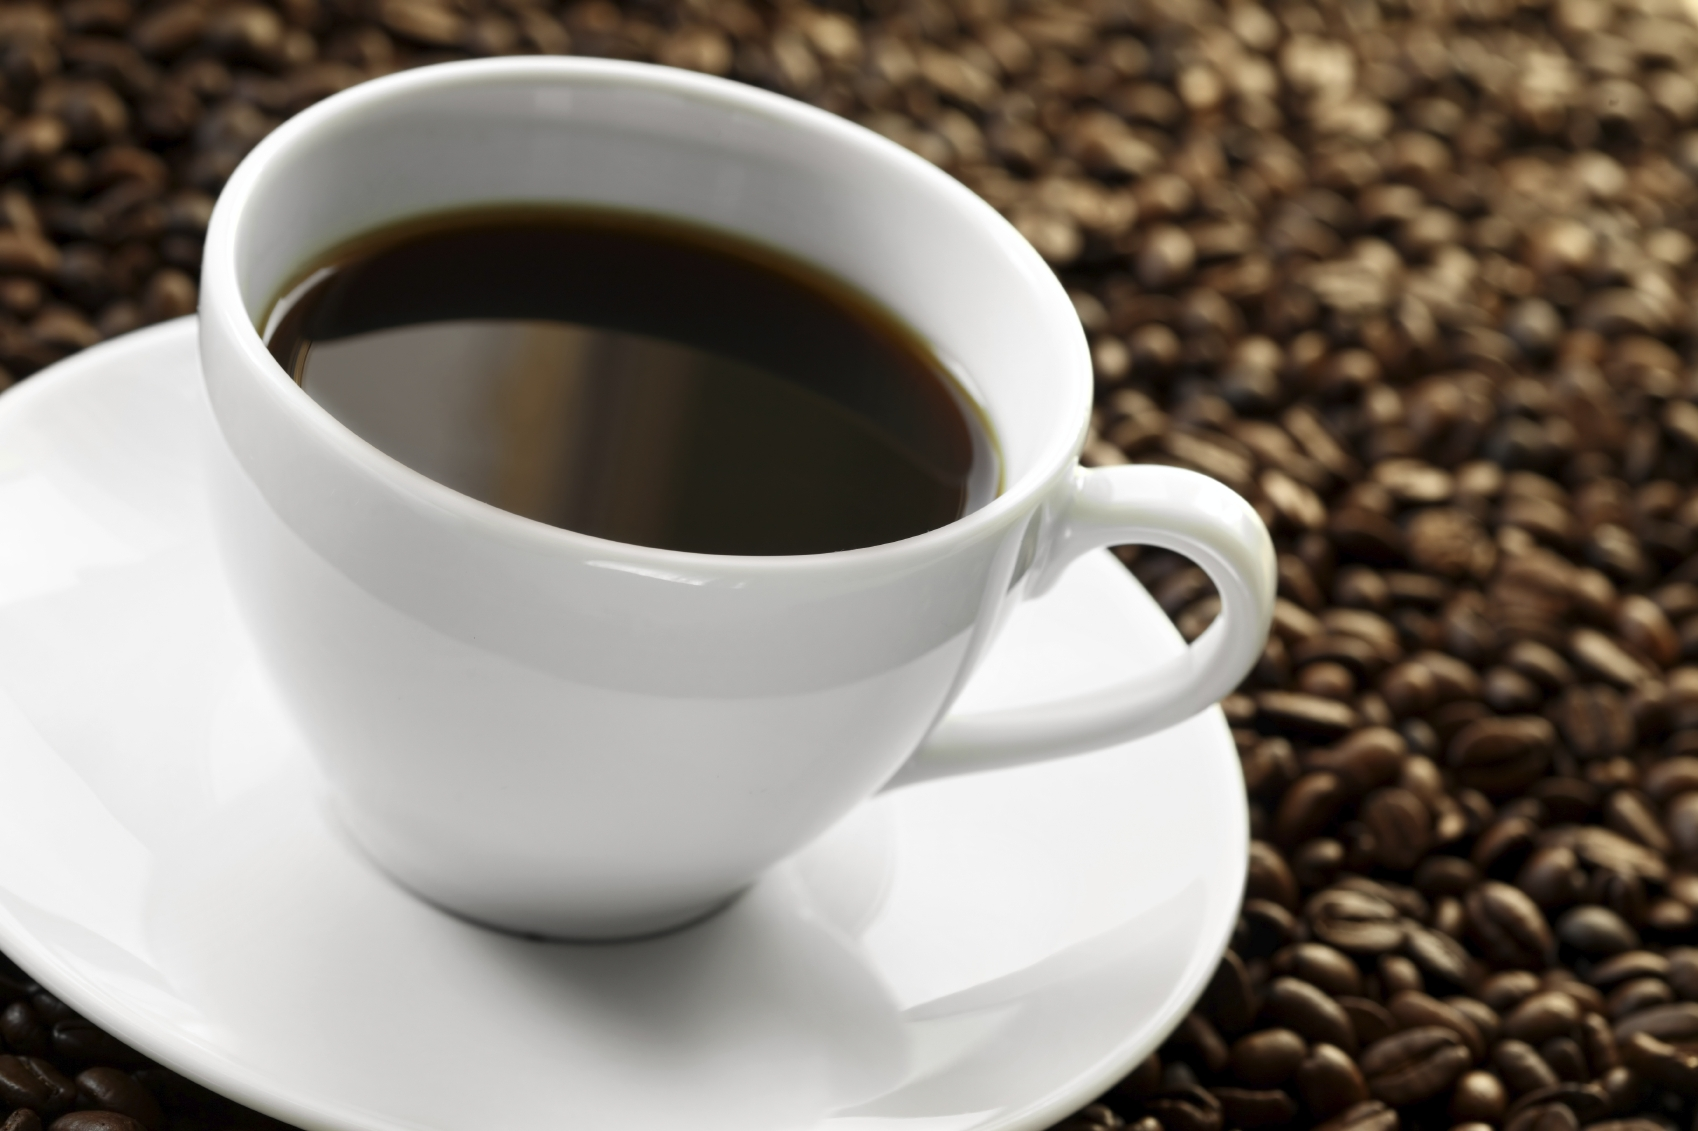 You may drink coffee year round, but August is National Coffee Month!